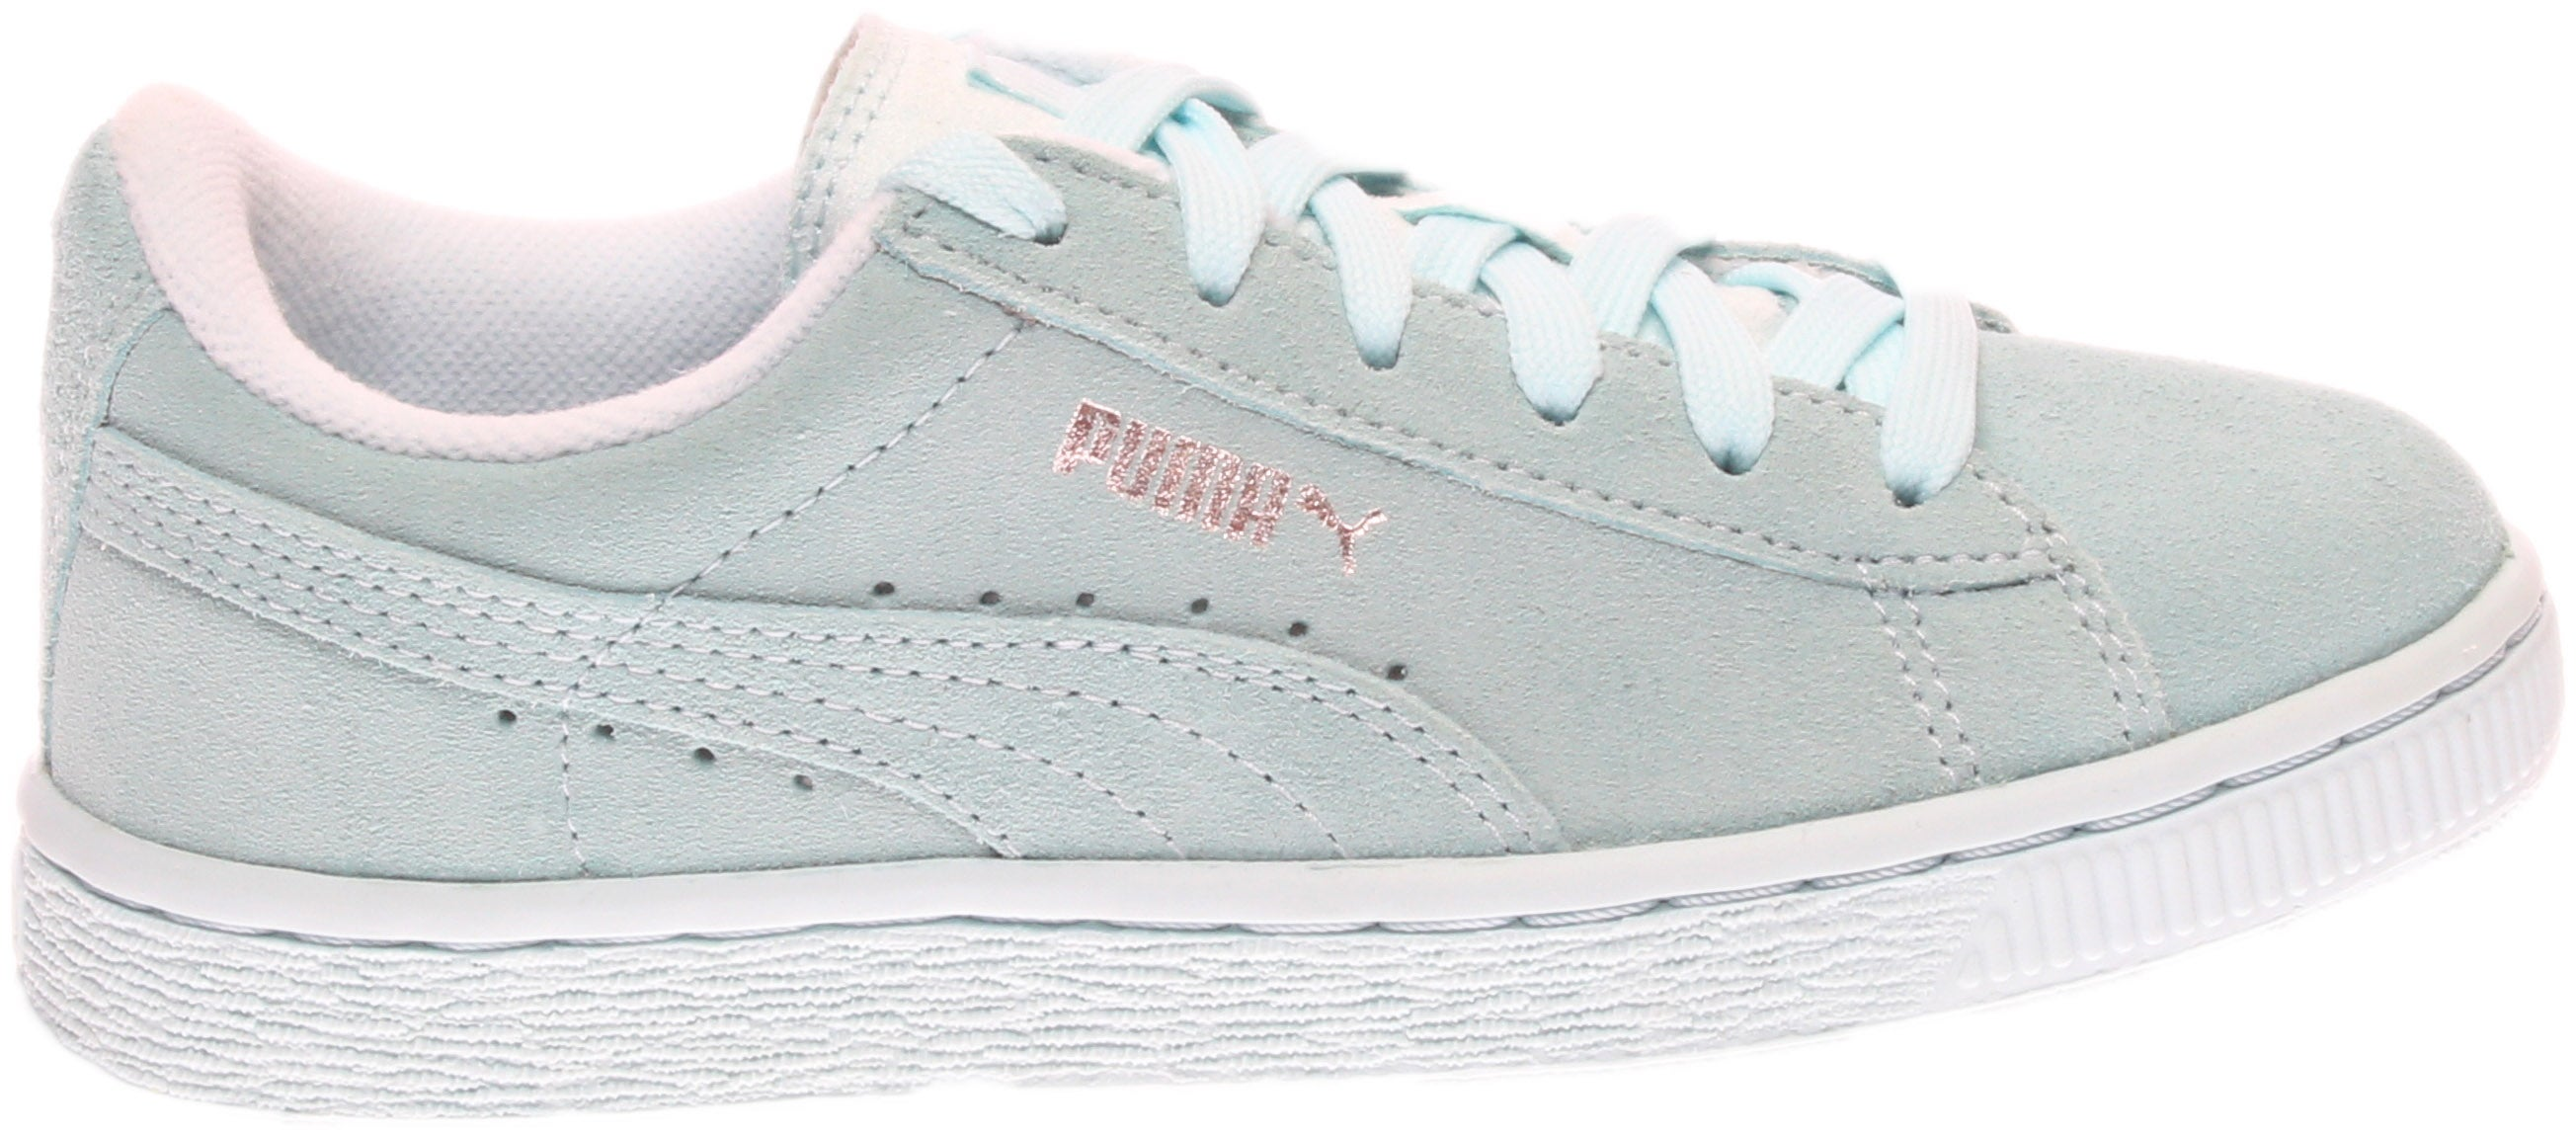 Puma PUMA SUEDE Infant Shoes